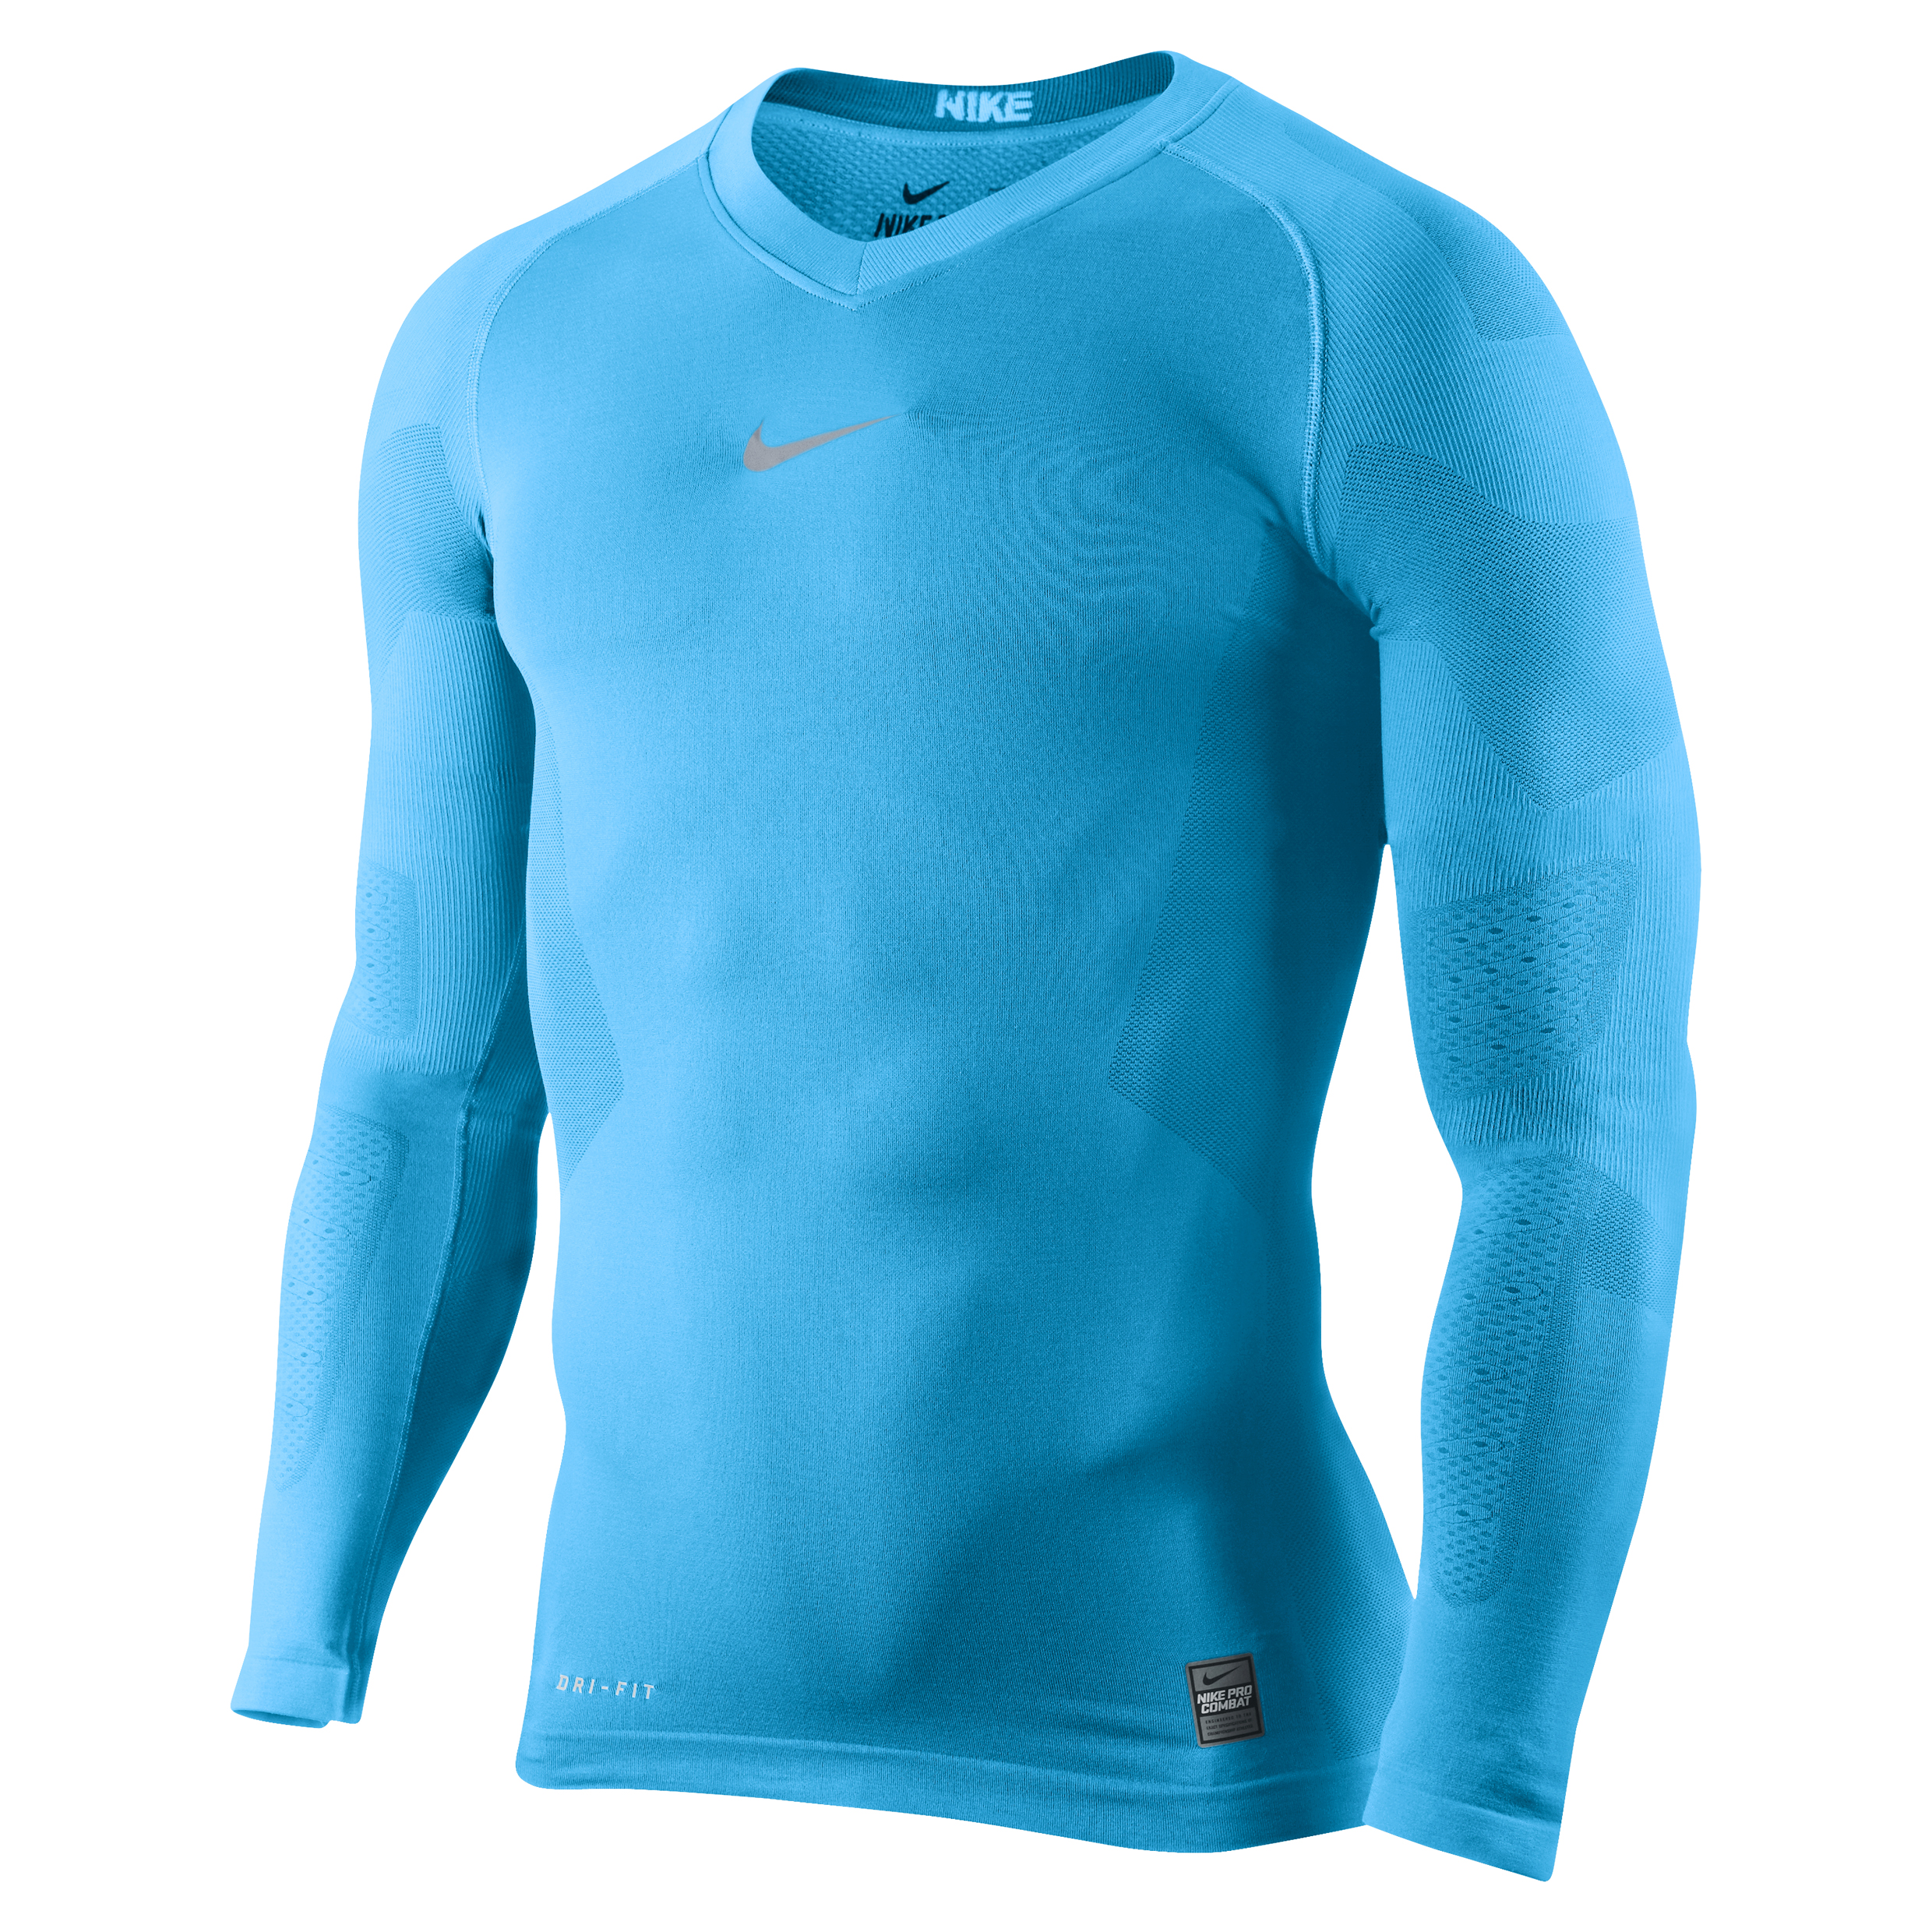 Nike Pro Combat Hypercool Vapor Base Layer Top - Long Sleeve Blue